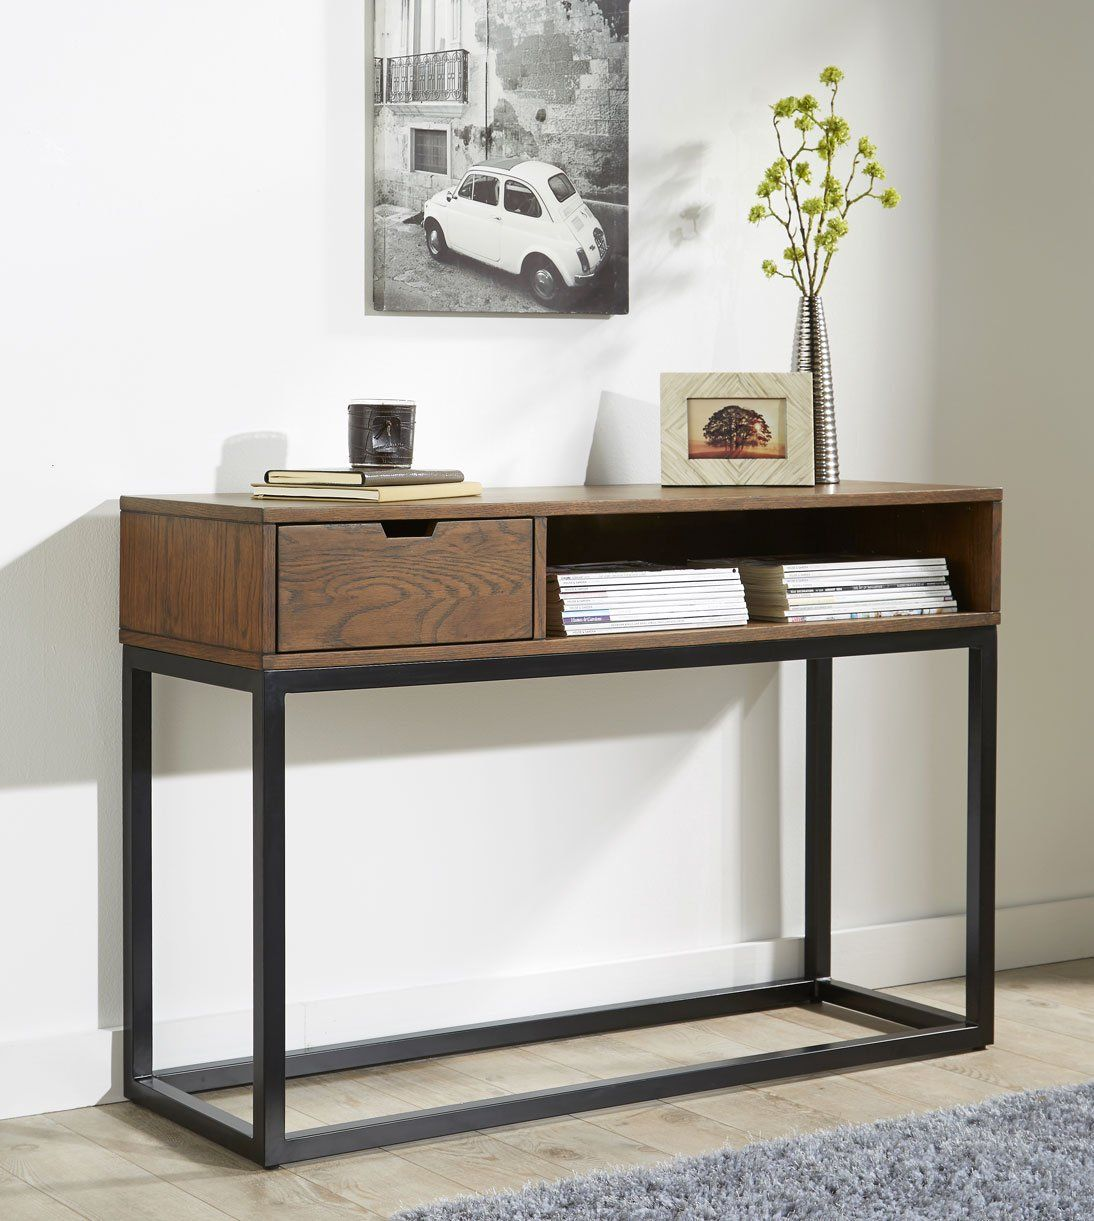 Ellery Storage Console Table Made Of Solid Oak With Drawer Hallway